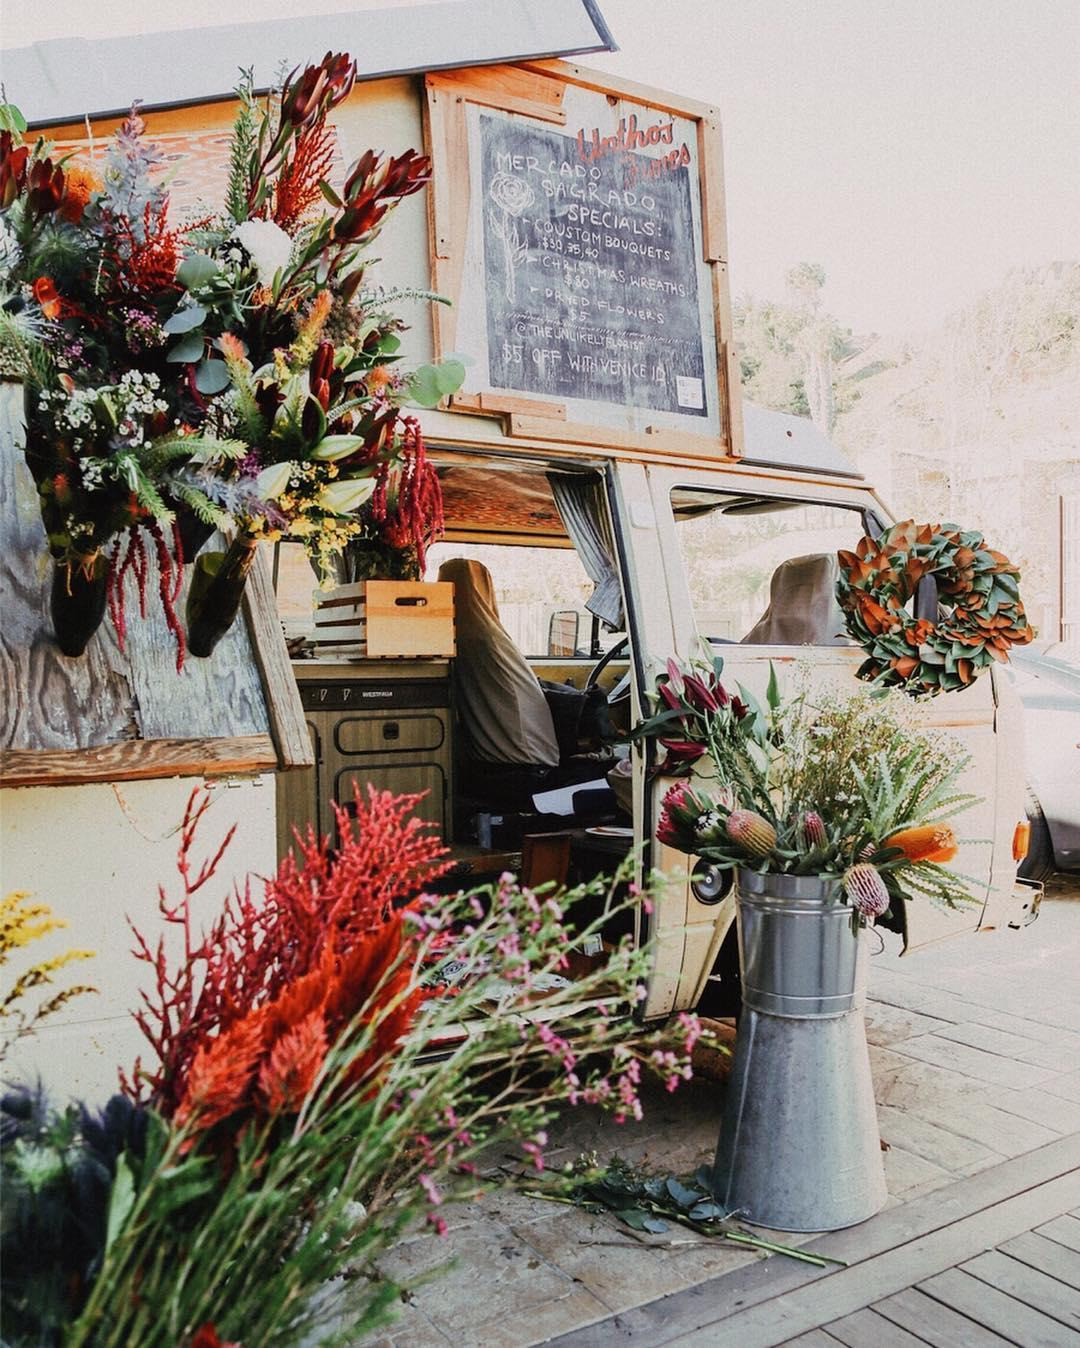 Wonderful Houses Around the World Inspirational 25 Wild & Wonderful Floral Shops From Around the World